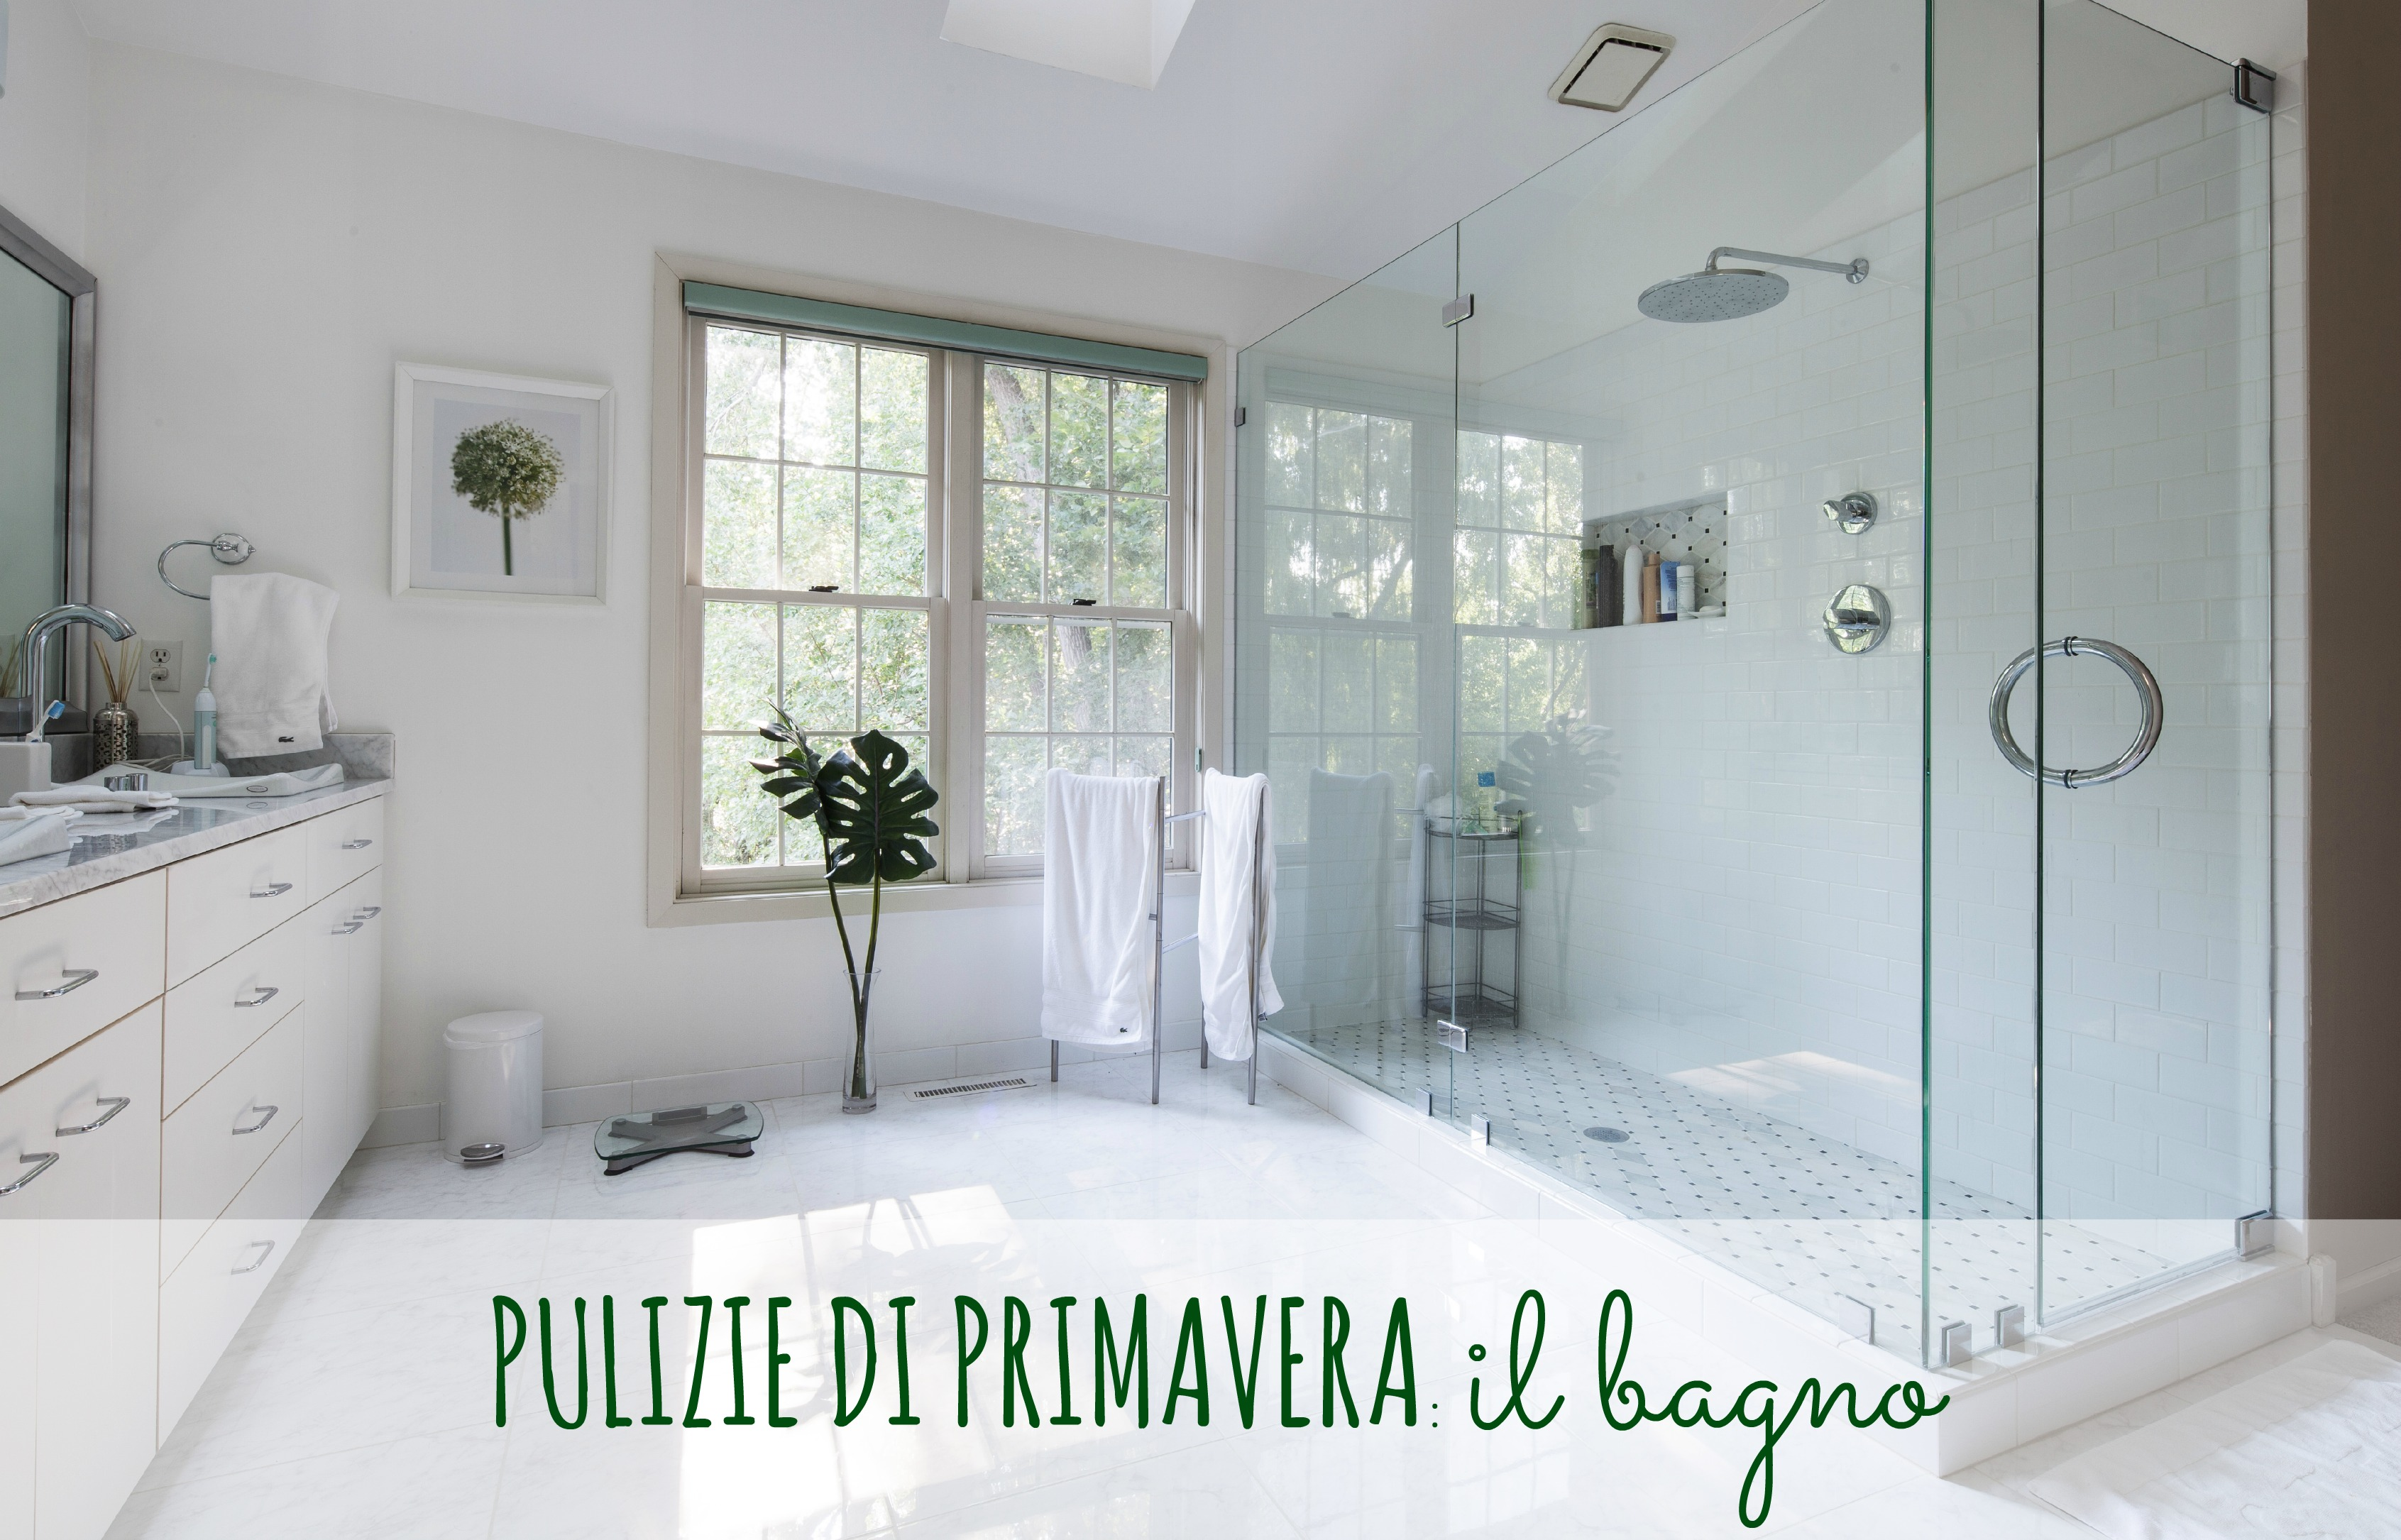 Pulizie di primavera il bagno babygreen for Small bathroom design 2m x 2m